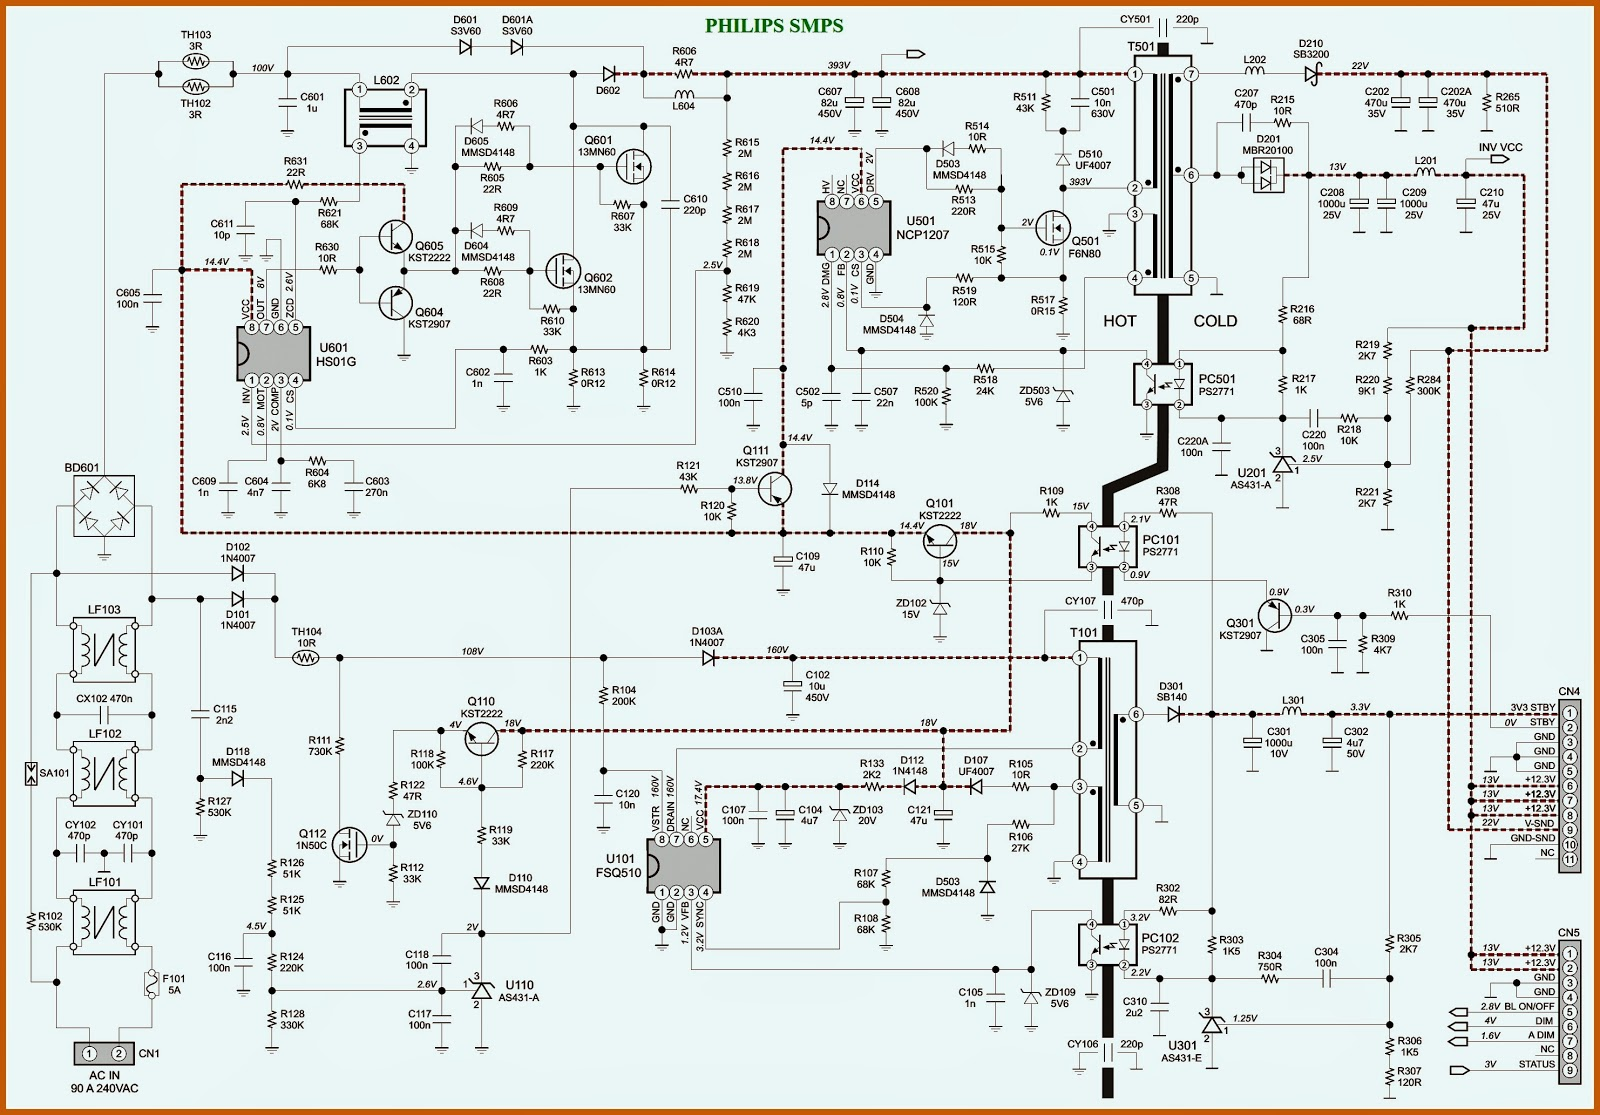 philips 40pfl3606 lcd tv power supply schematic electro help rh electronicshelponline blogspot com lcd tv power supply circuit diagram sony lcd tv circuit diagram pdf